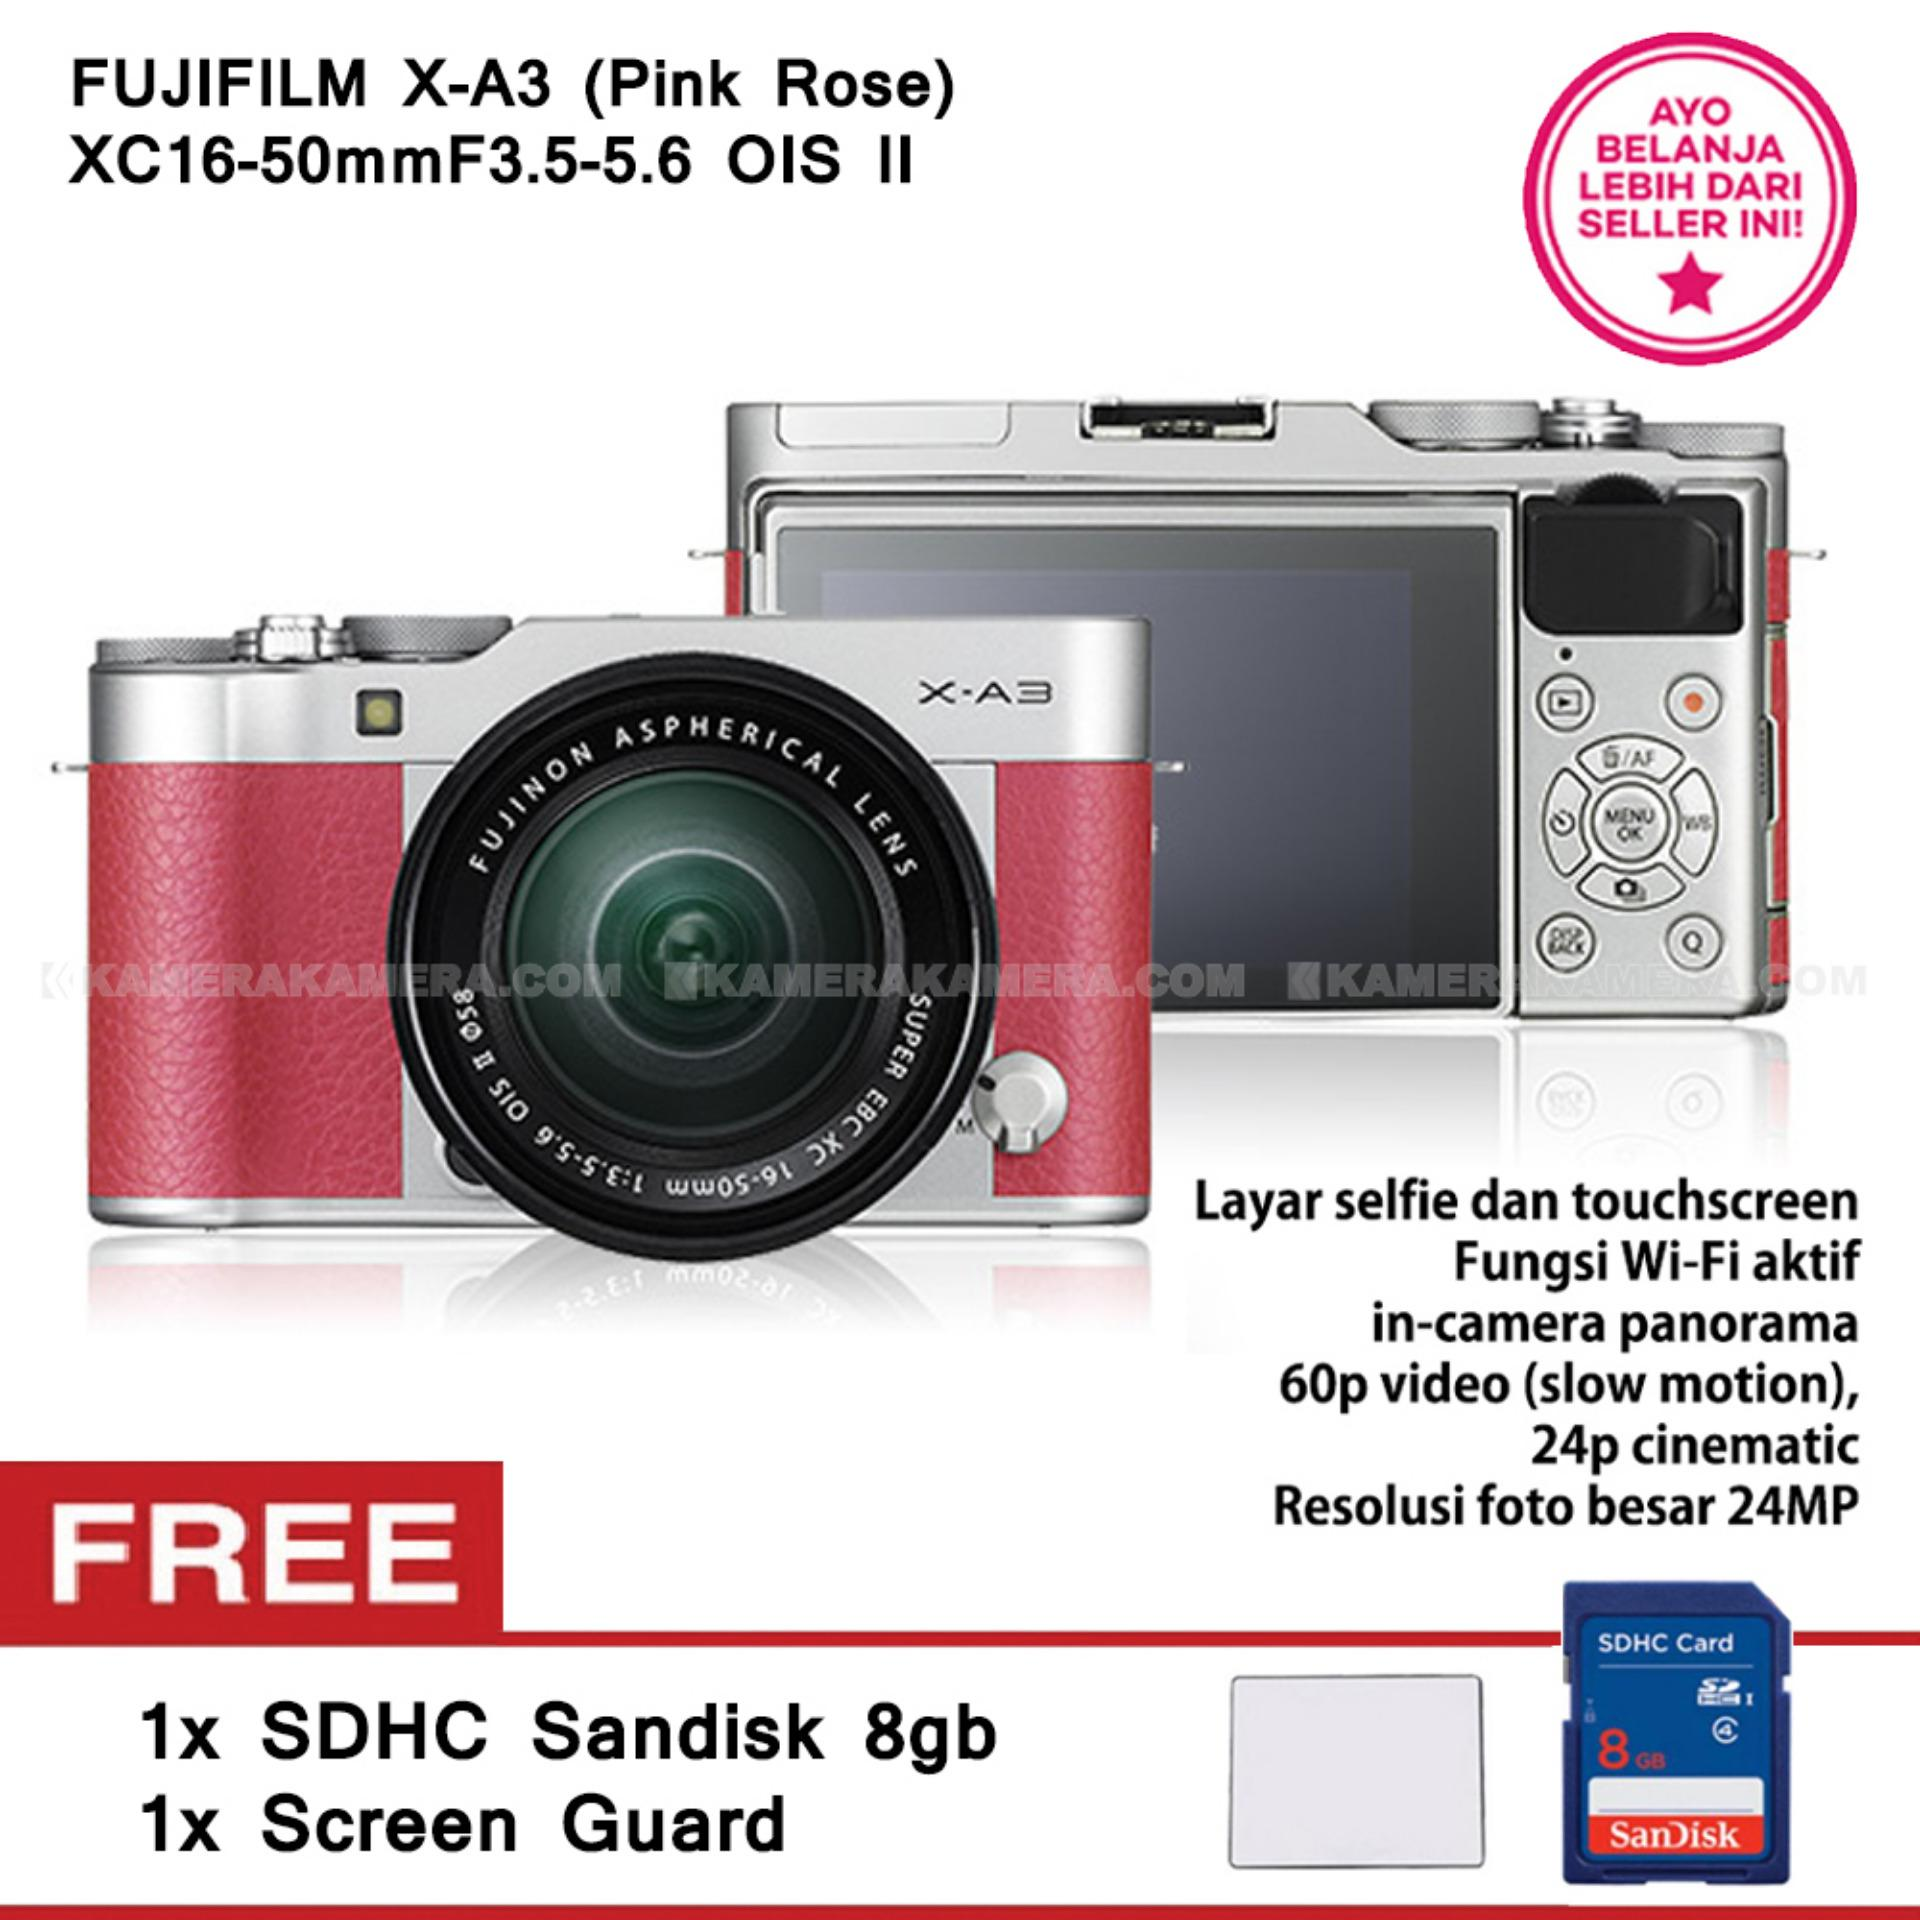 FUJIFILM X-A3 (Pink Rose) + XC16-50mm F3.5-5.6 OIS II Free SanDisk 8GB + Screen Guard